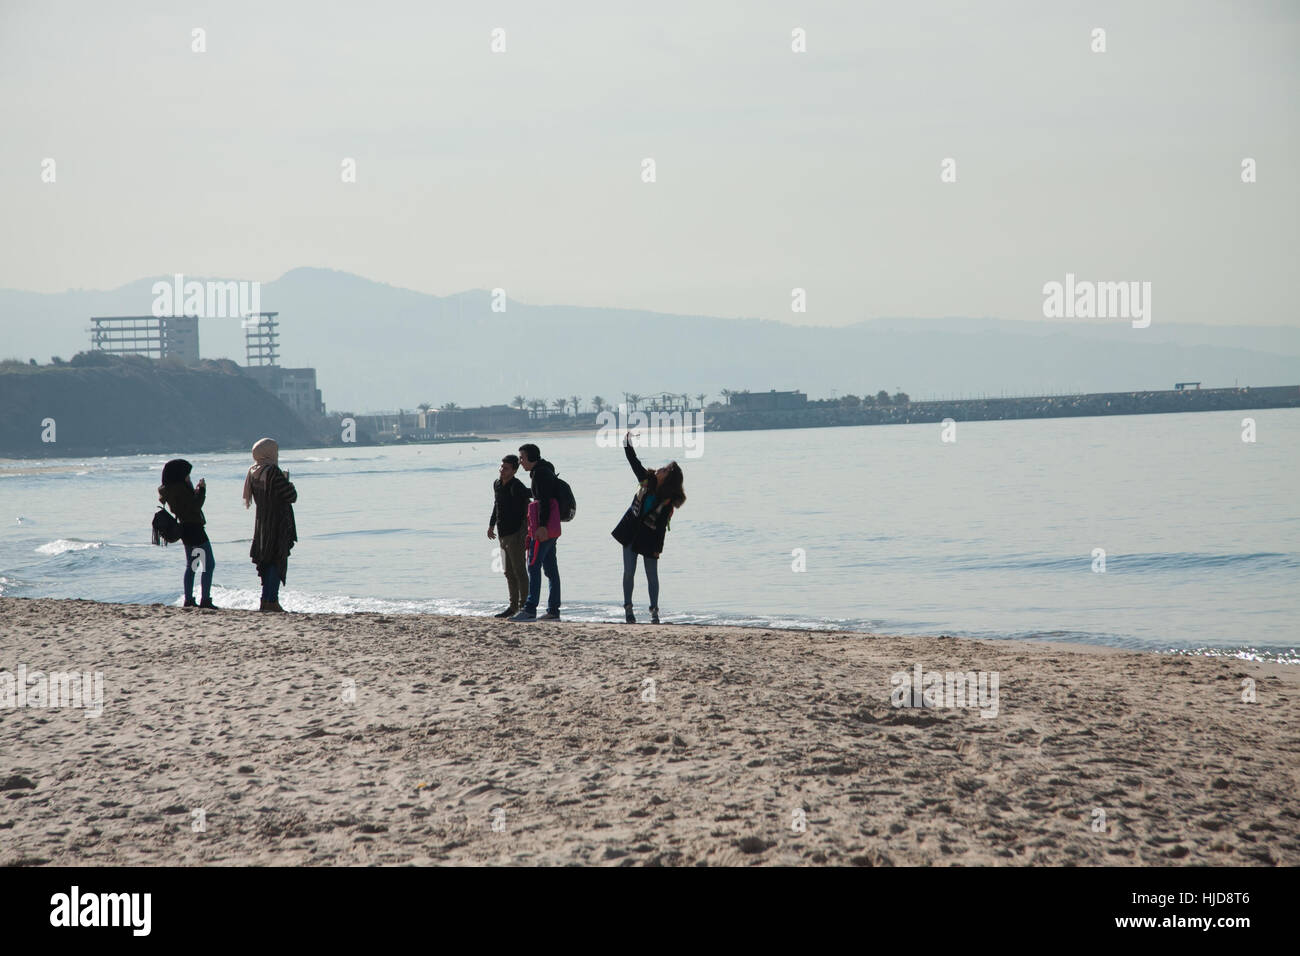 Beirut, Lebanon. 24th Jan, 2017. People enjoy the winter sunshine and unusually warm temperatures on Beirut beach - Stock Image